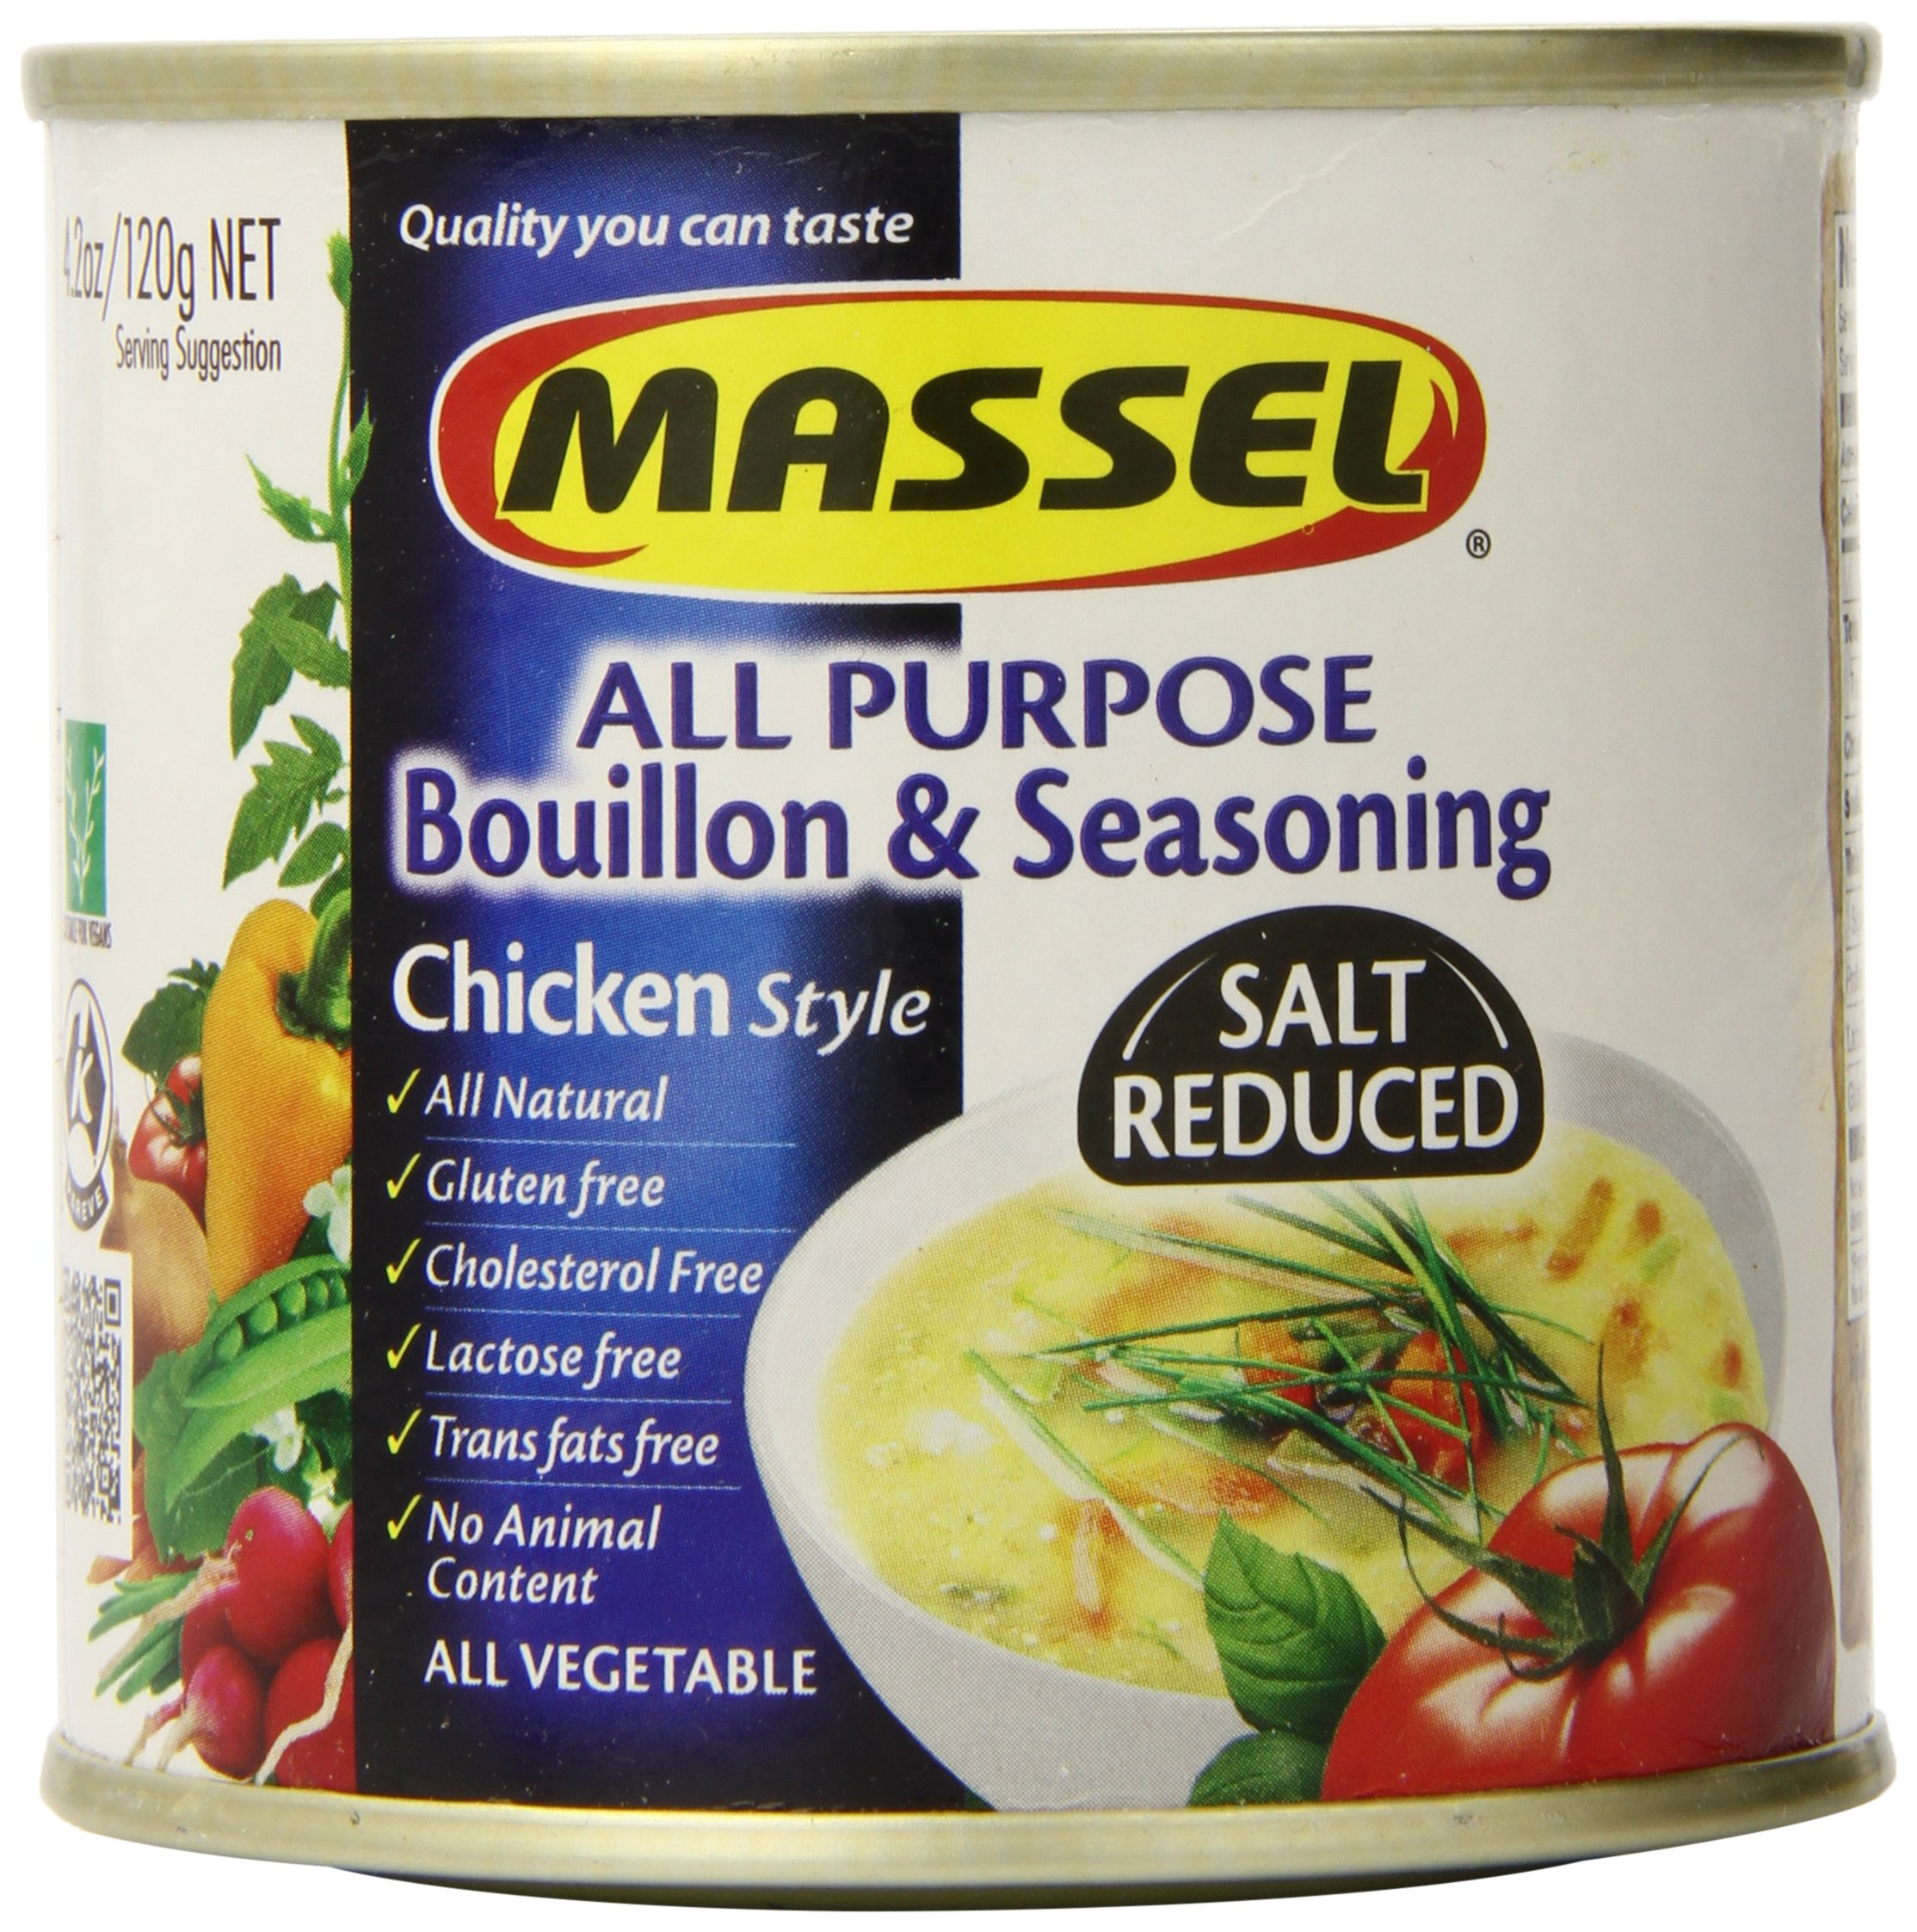 Massel Gluten-Free, Salt Reduced All Purpose Bouillon & Seasoning Granules, Chicken Style, 4.2-Ounce (Pack of 6)